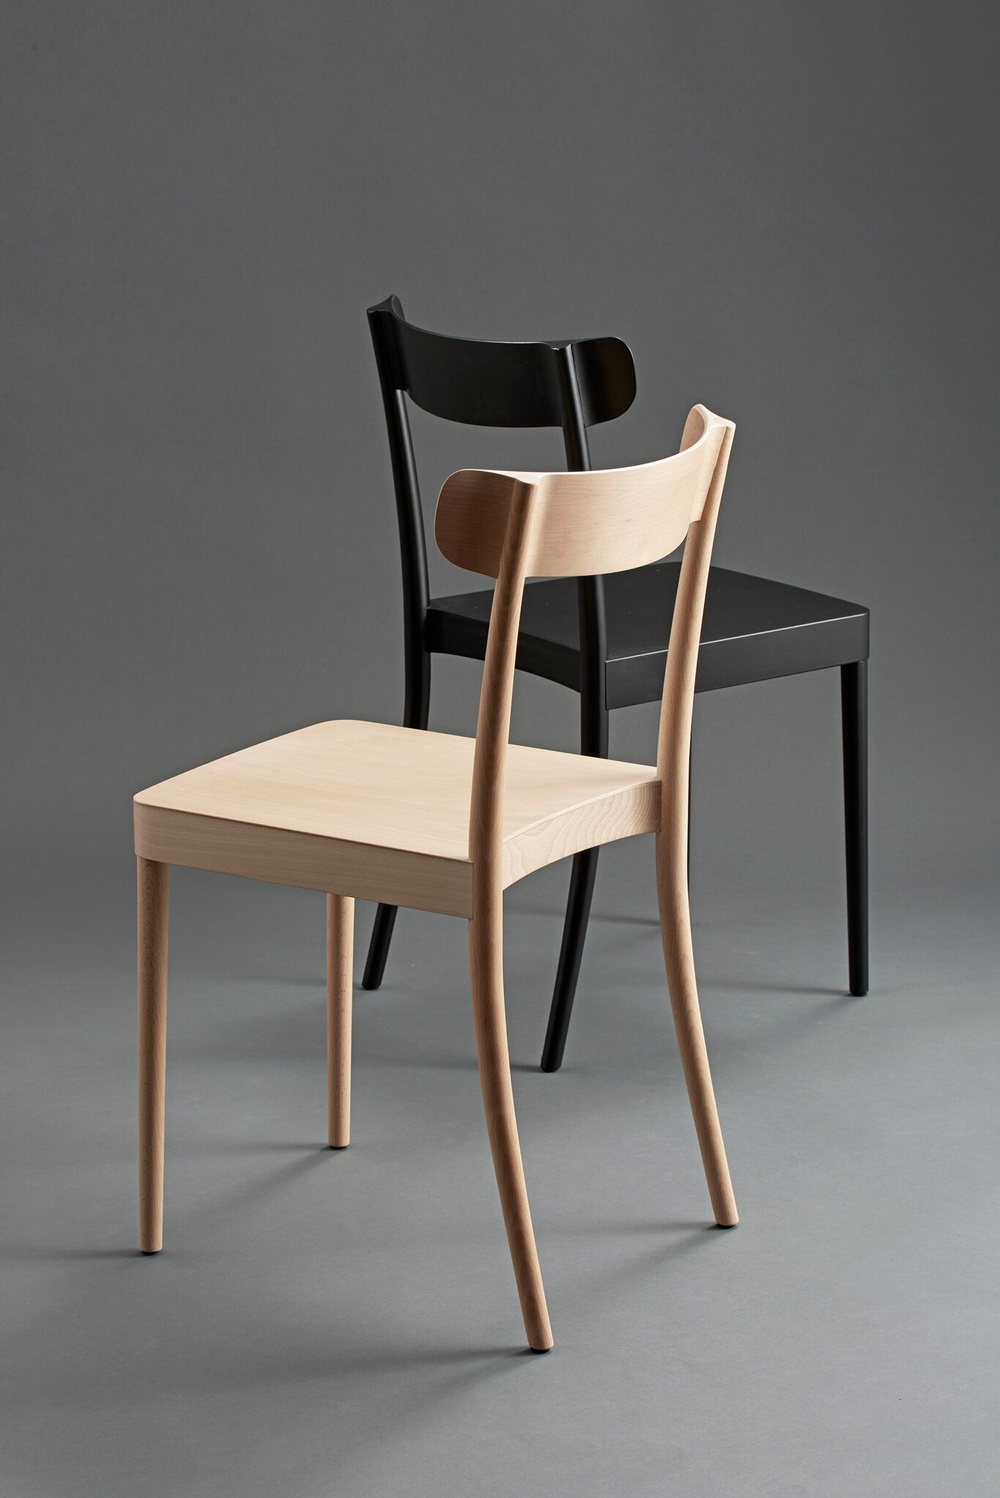 David Ericsson's 'Petite' chair for Gärsnäs.